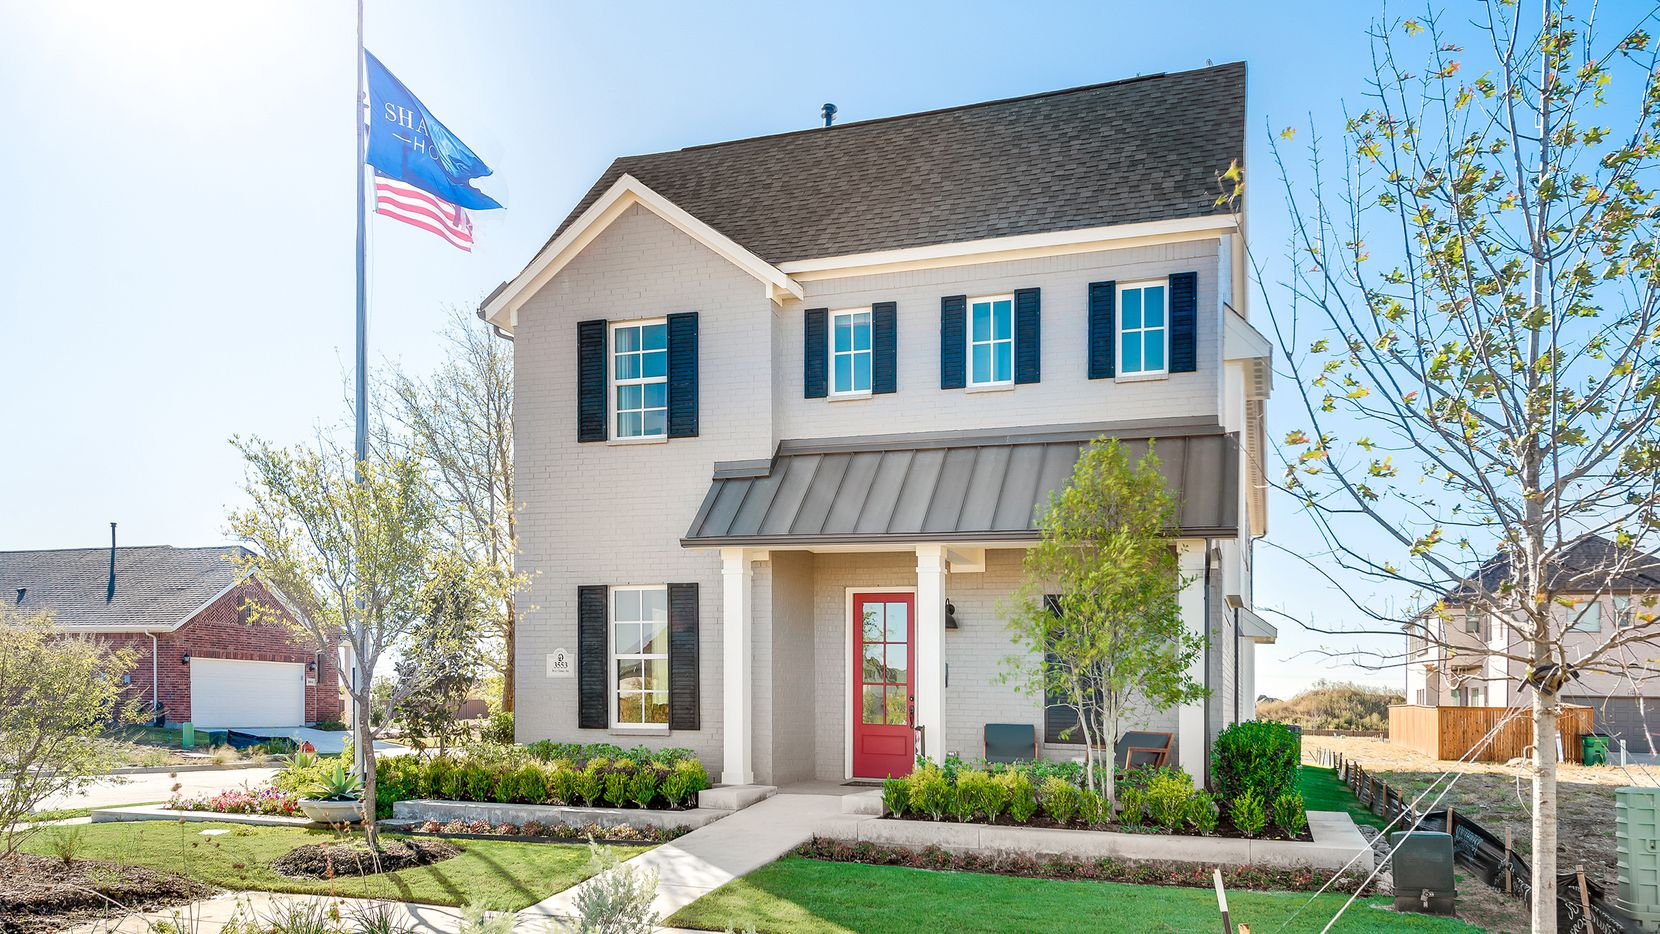 This modern farmhouse by Shaddock Homes is at 3553 West Cheney Ave. in Celina's Light Farms Brenham.